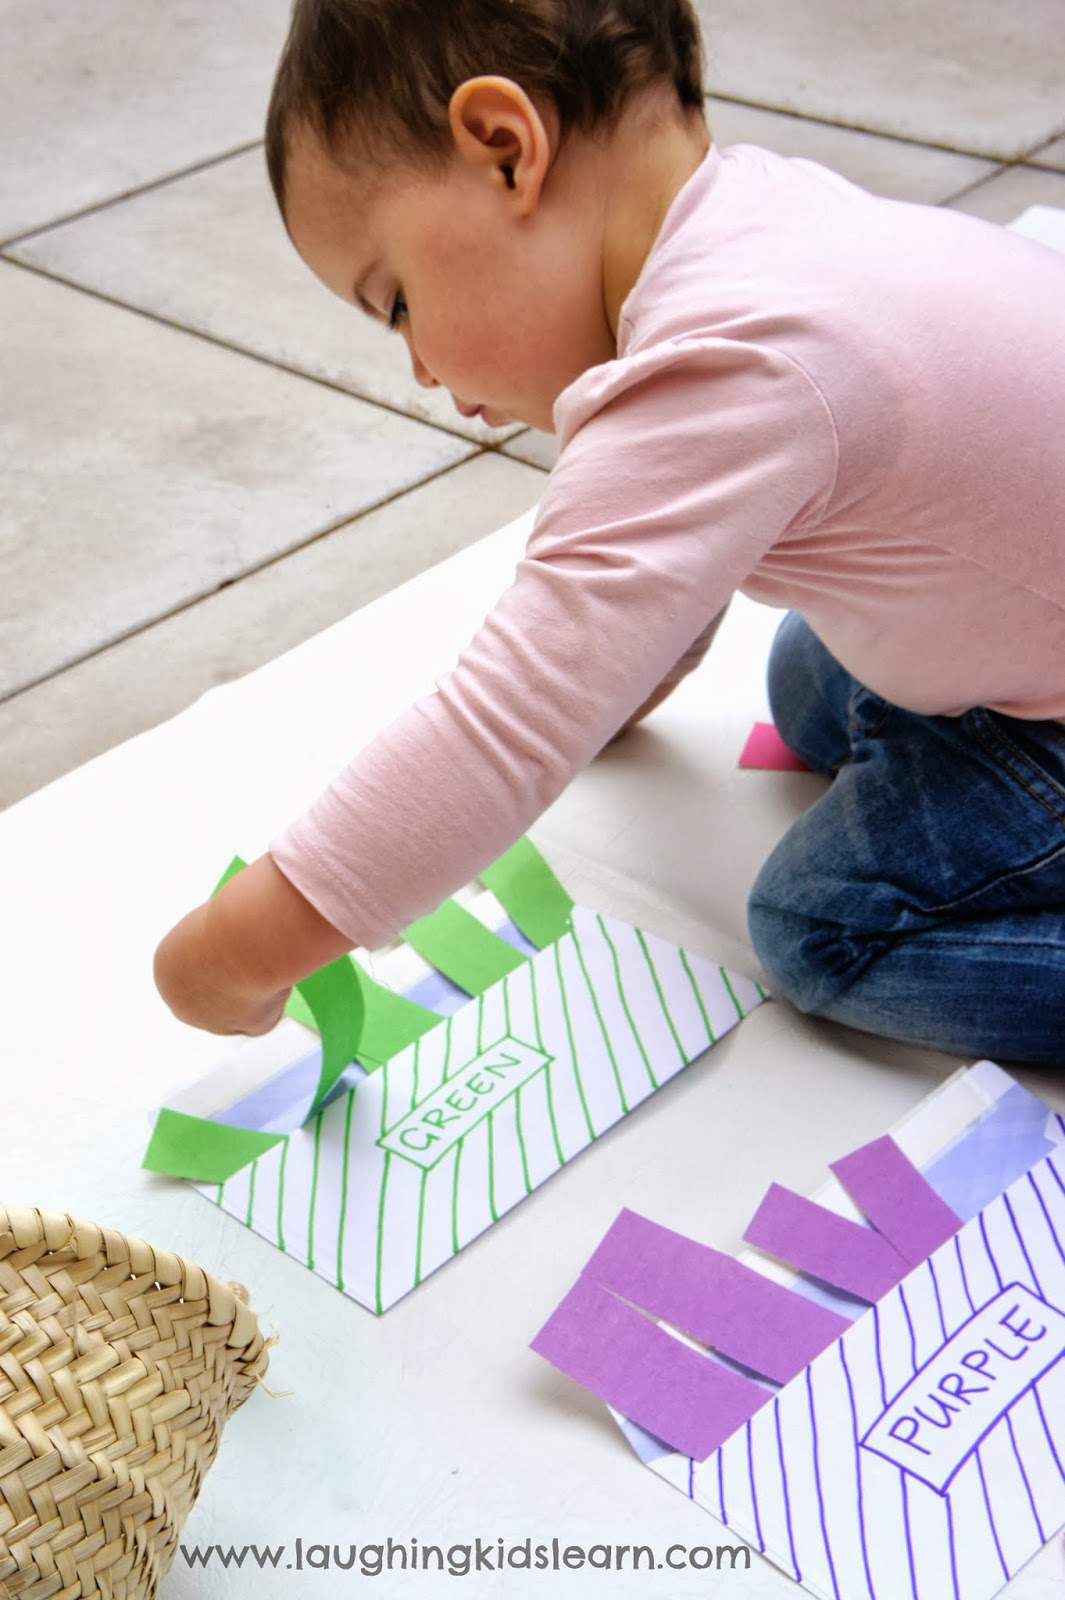 Colour Sorting Activity for Toddlers - Laughing Kids Learn